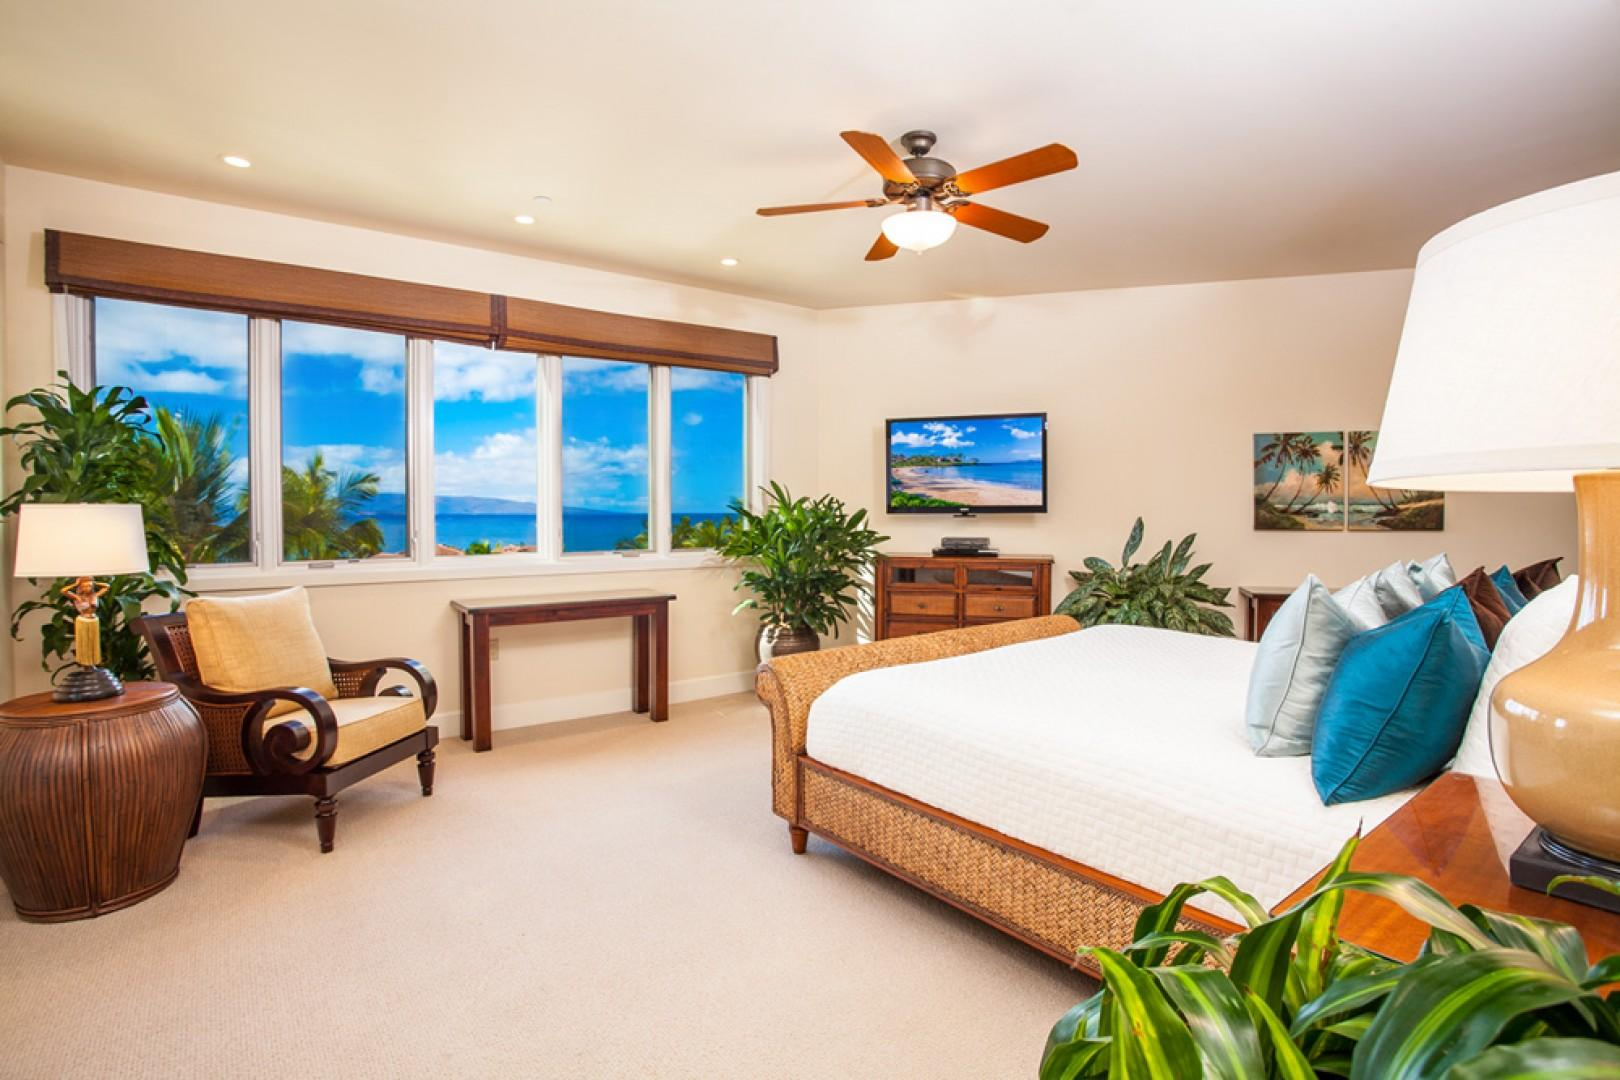 Blue Horizons K308 - Ocean View Master Bedroom with King Bed, Original Art, Updated Tropical Decor, HDTV, HD Cable, CD/DVD